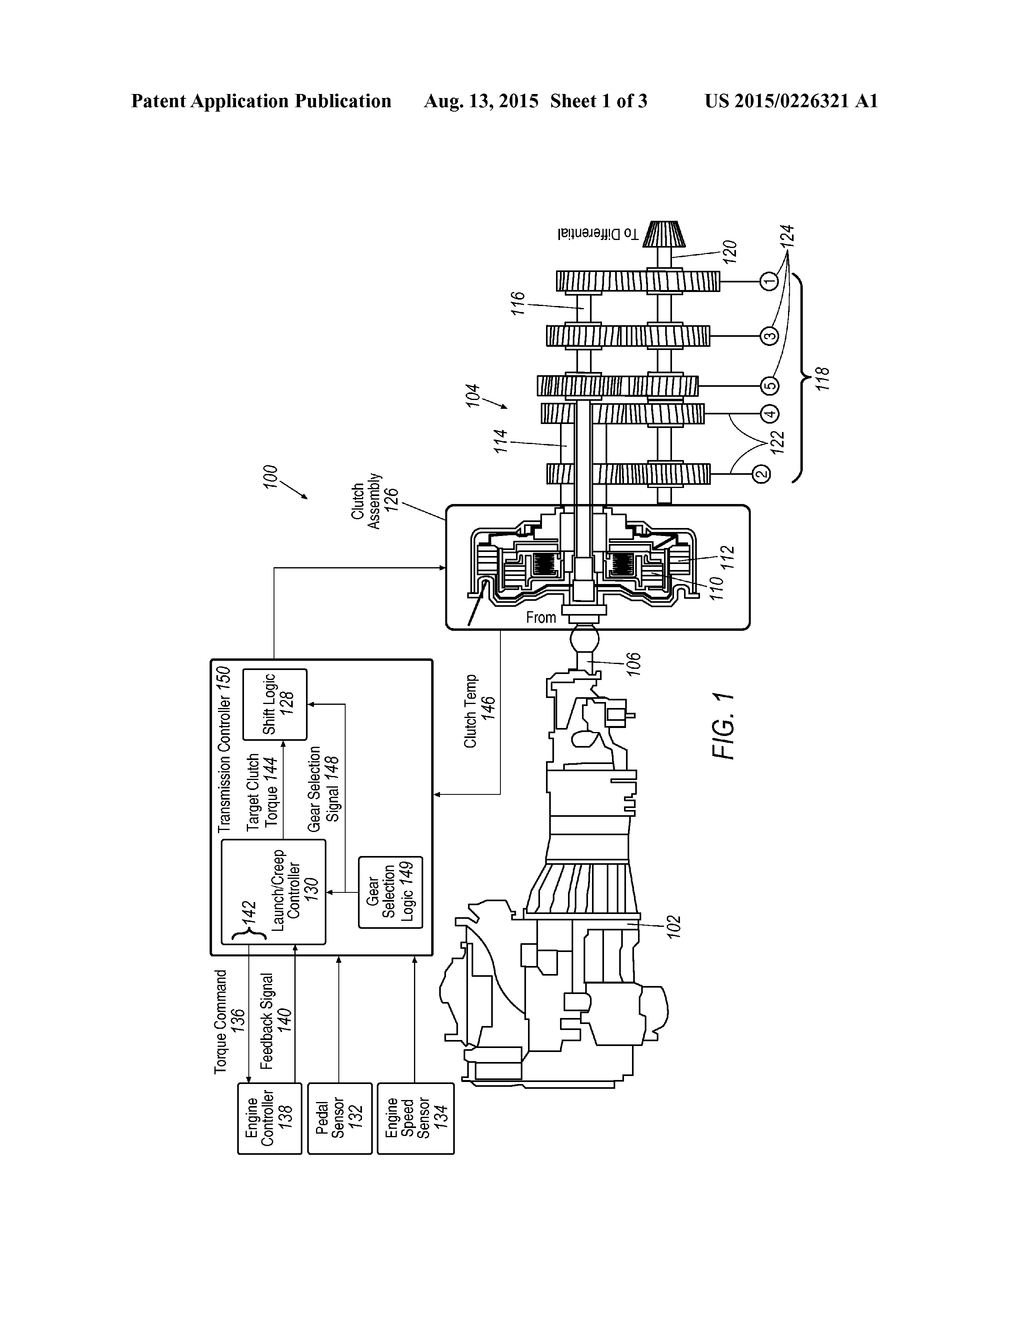 full clutch slip power shift of a dual clutch transmission - diagram,  schematic, and image 02